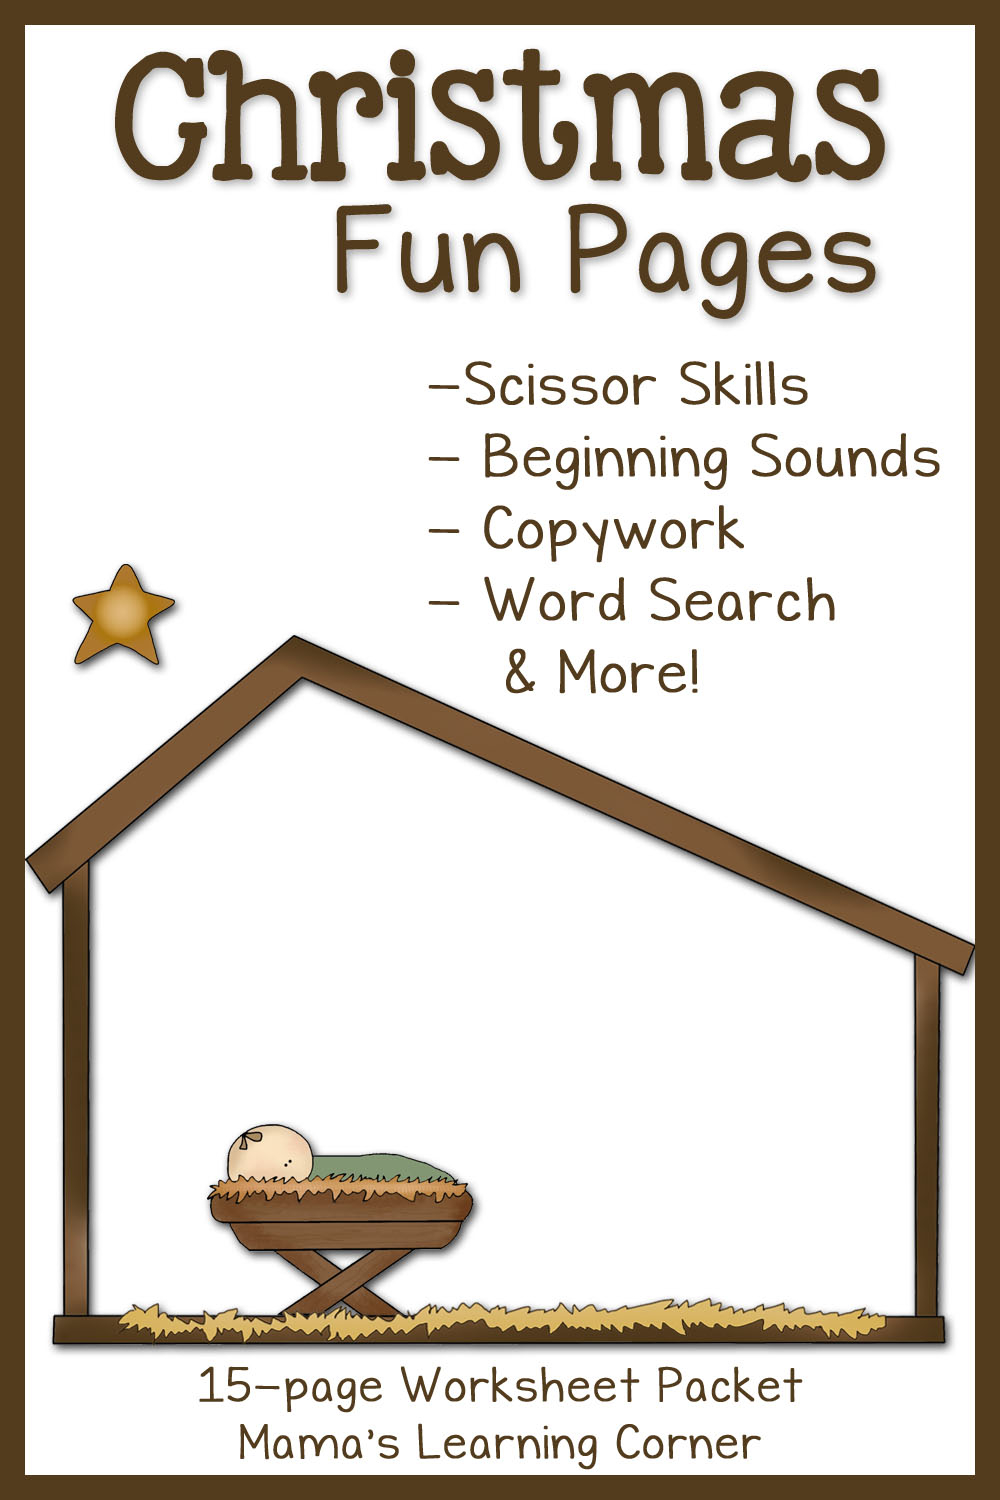 Christmas Fun Pages: Free 15-Page Worksheet Set - Mamas